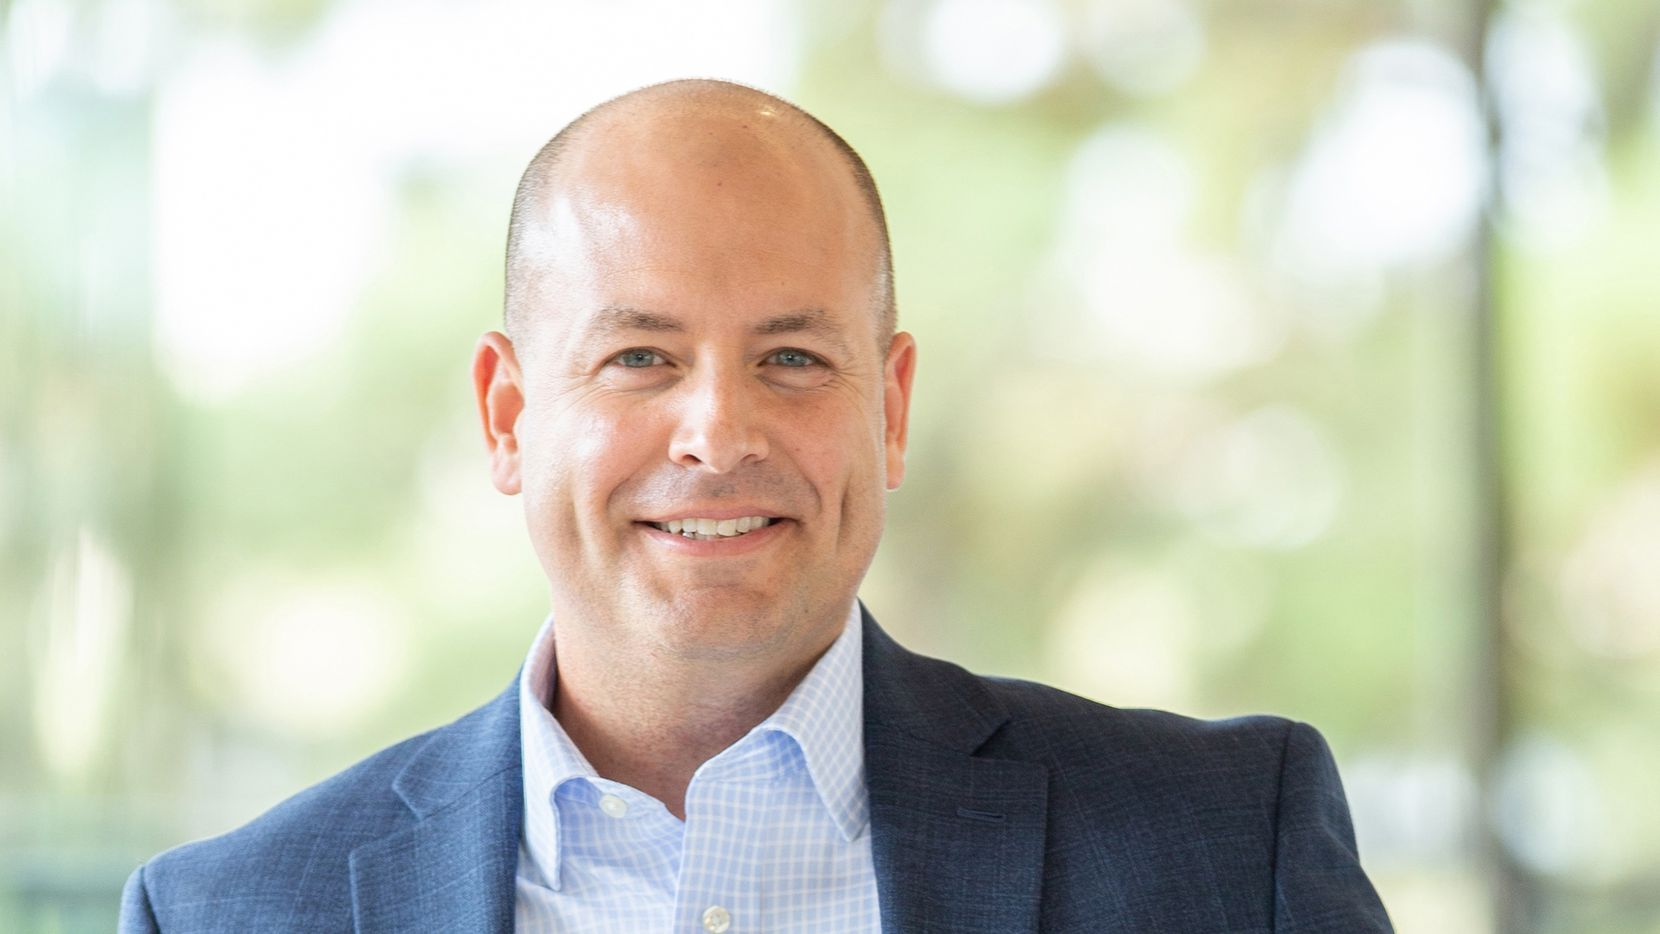 In a video call, Ebby Halliday Companies' president and CEO Chris Kelly acknowledged the exploding North Texas real estate market and how his team has risen to the occasion.